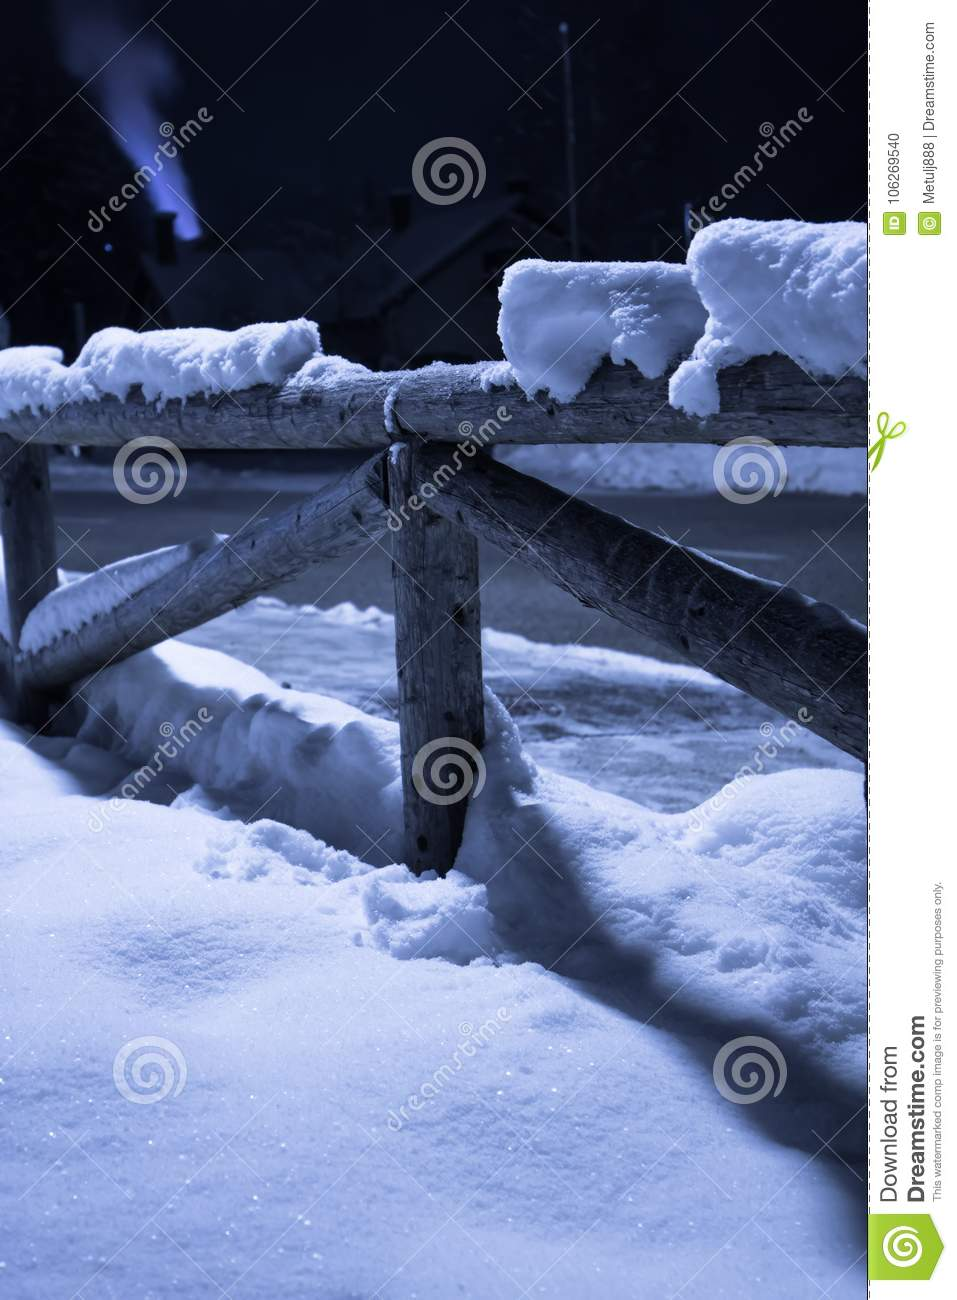 Wintertime fallen snow on wooden fence motif at night with smoke going out the chimney with back light